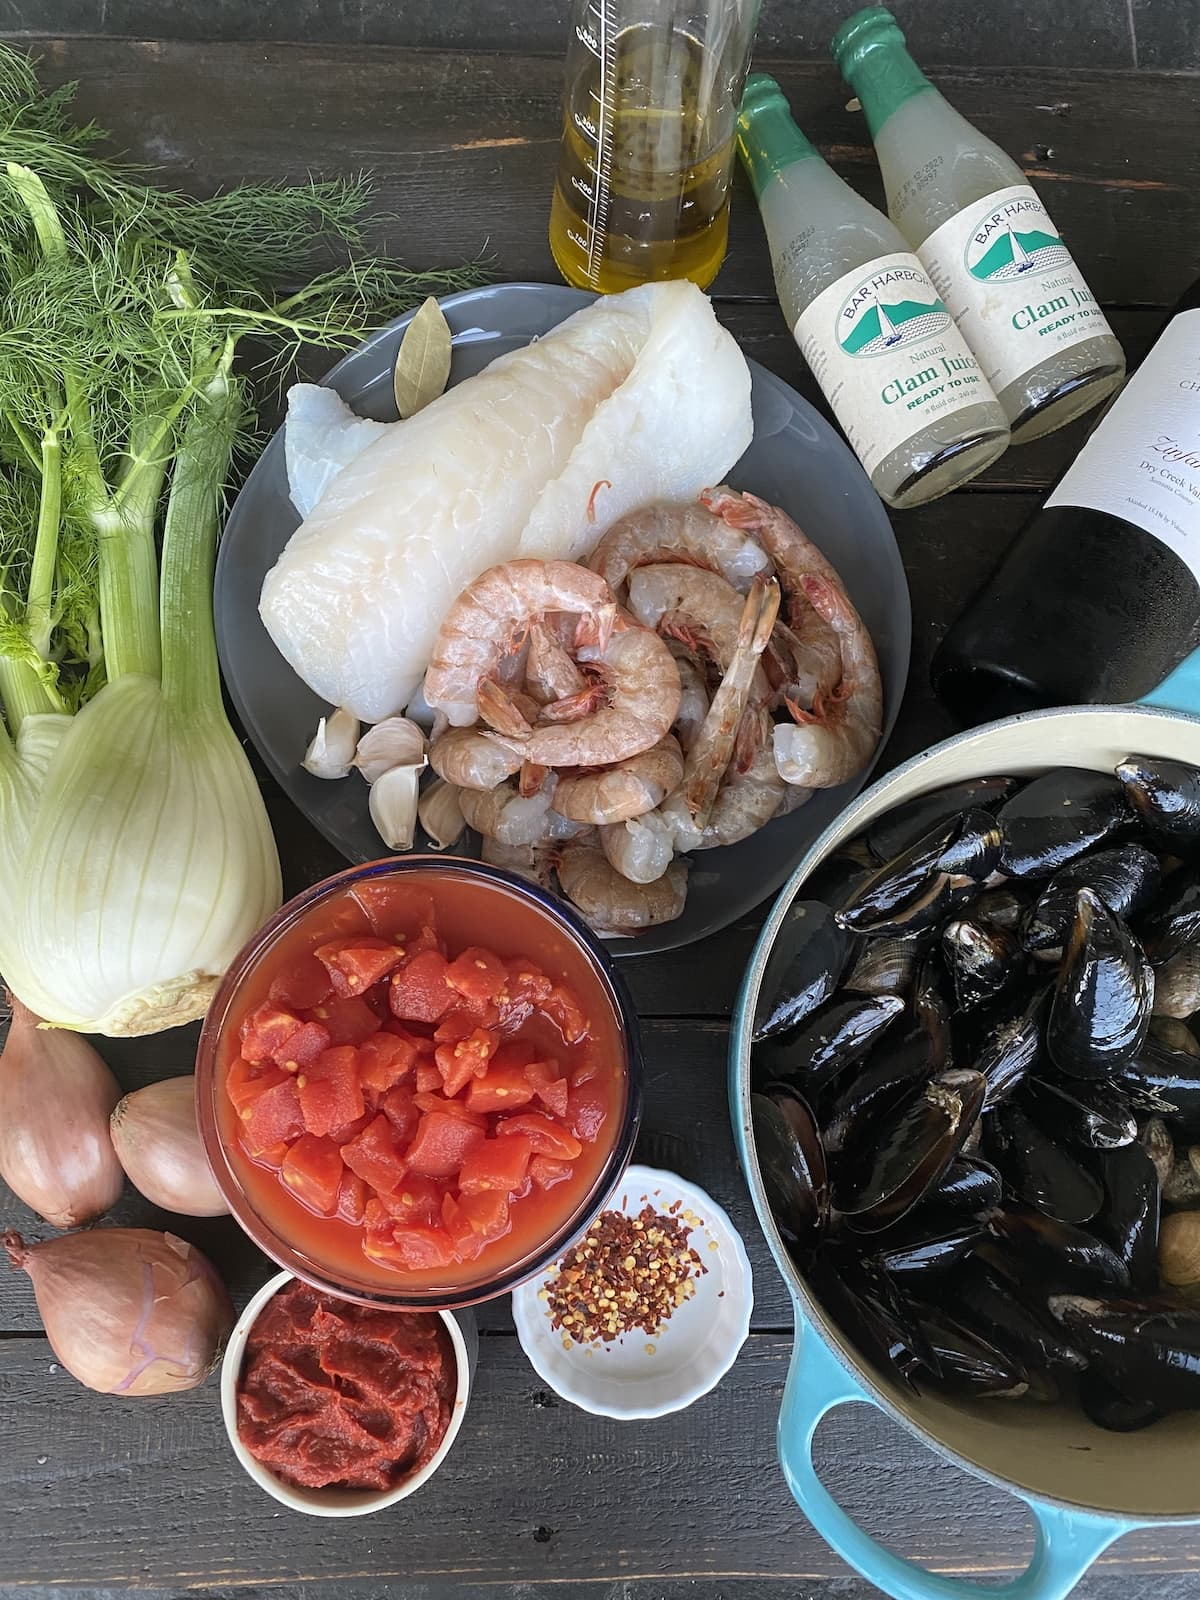 Ingredients for Cioppino.